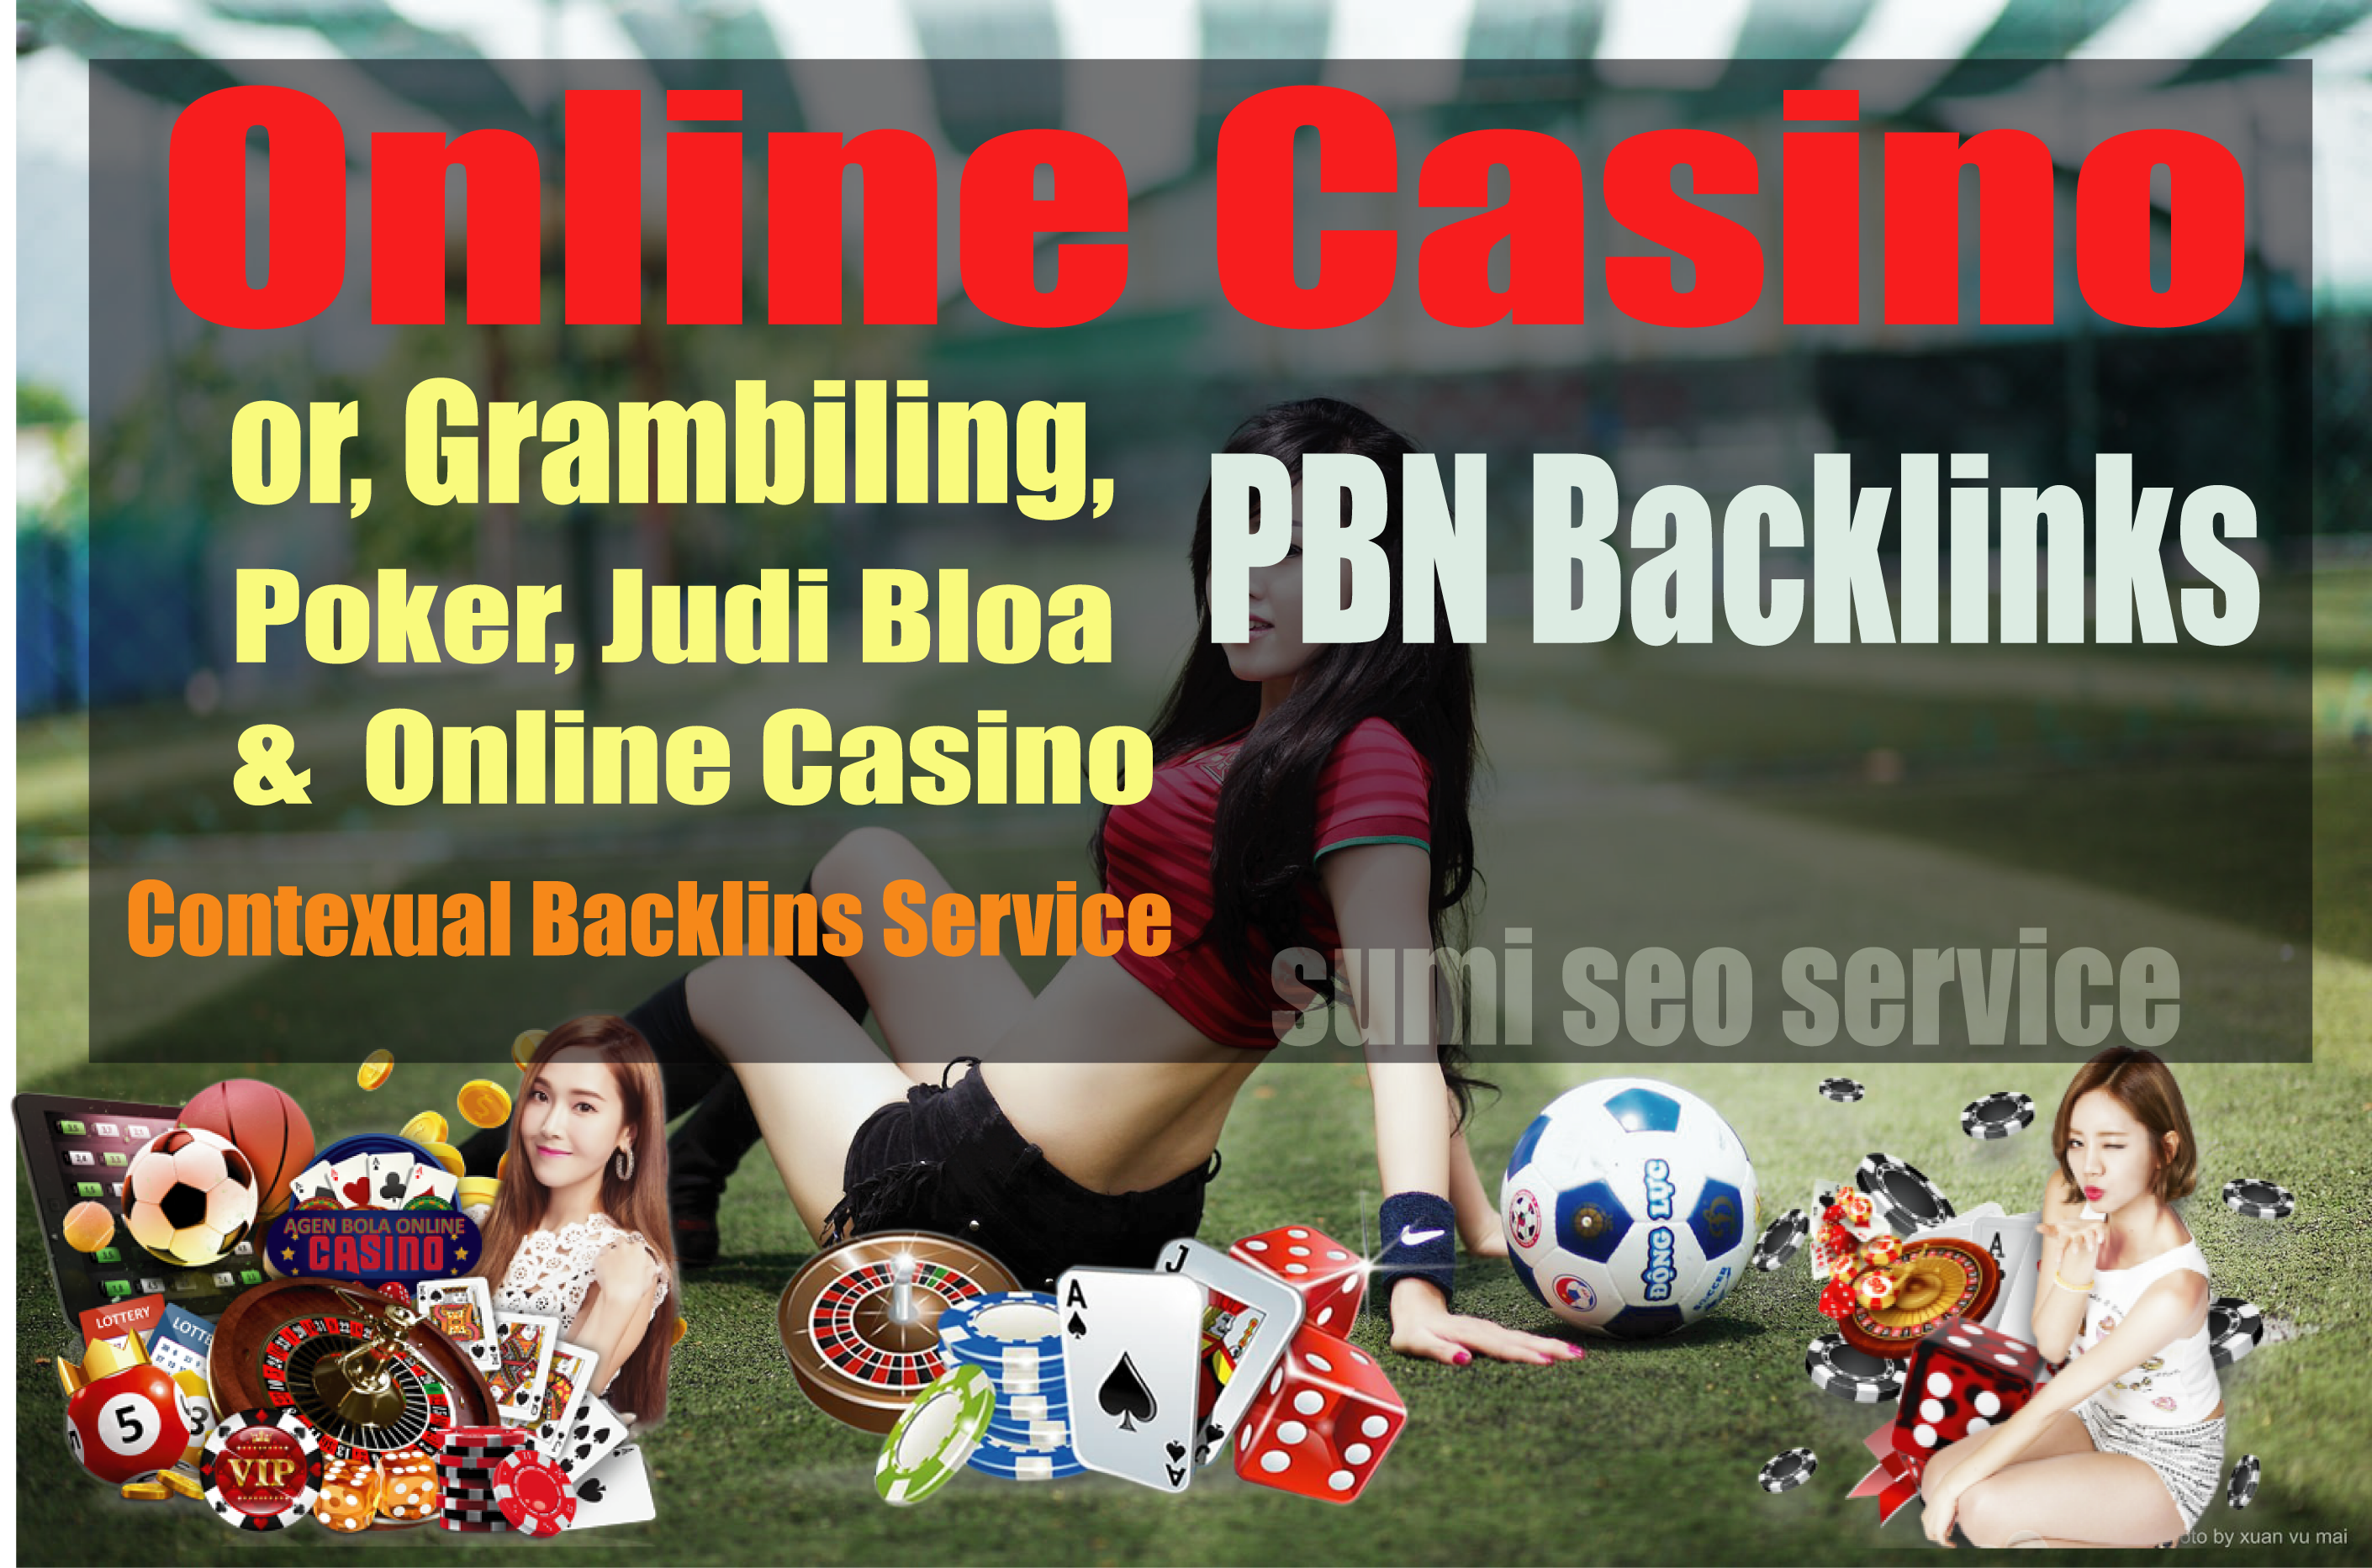 5 Casino Guest post- Casino / Gambling / Poker / Betting / sports sites